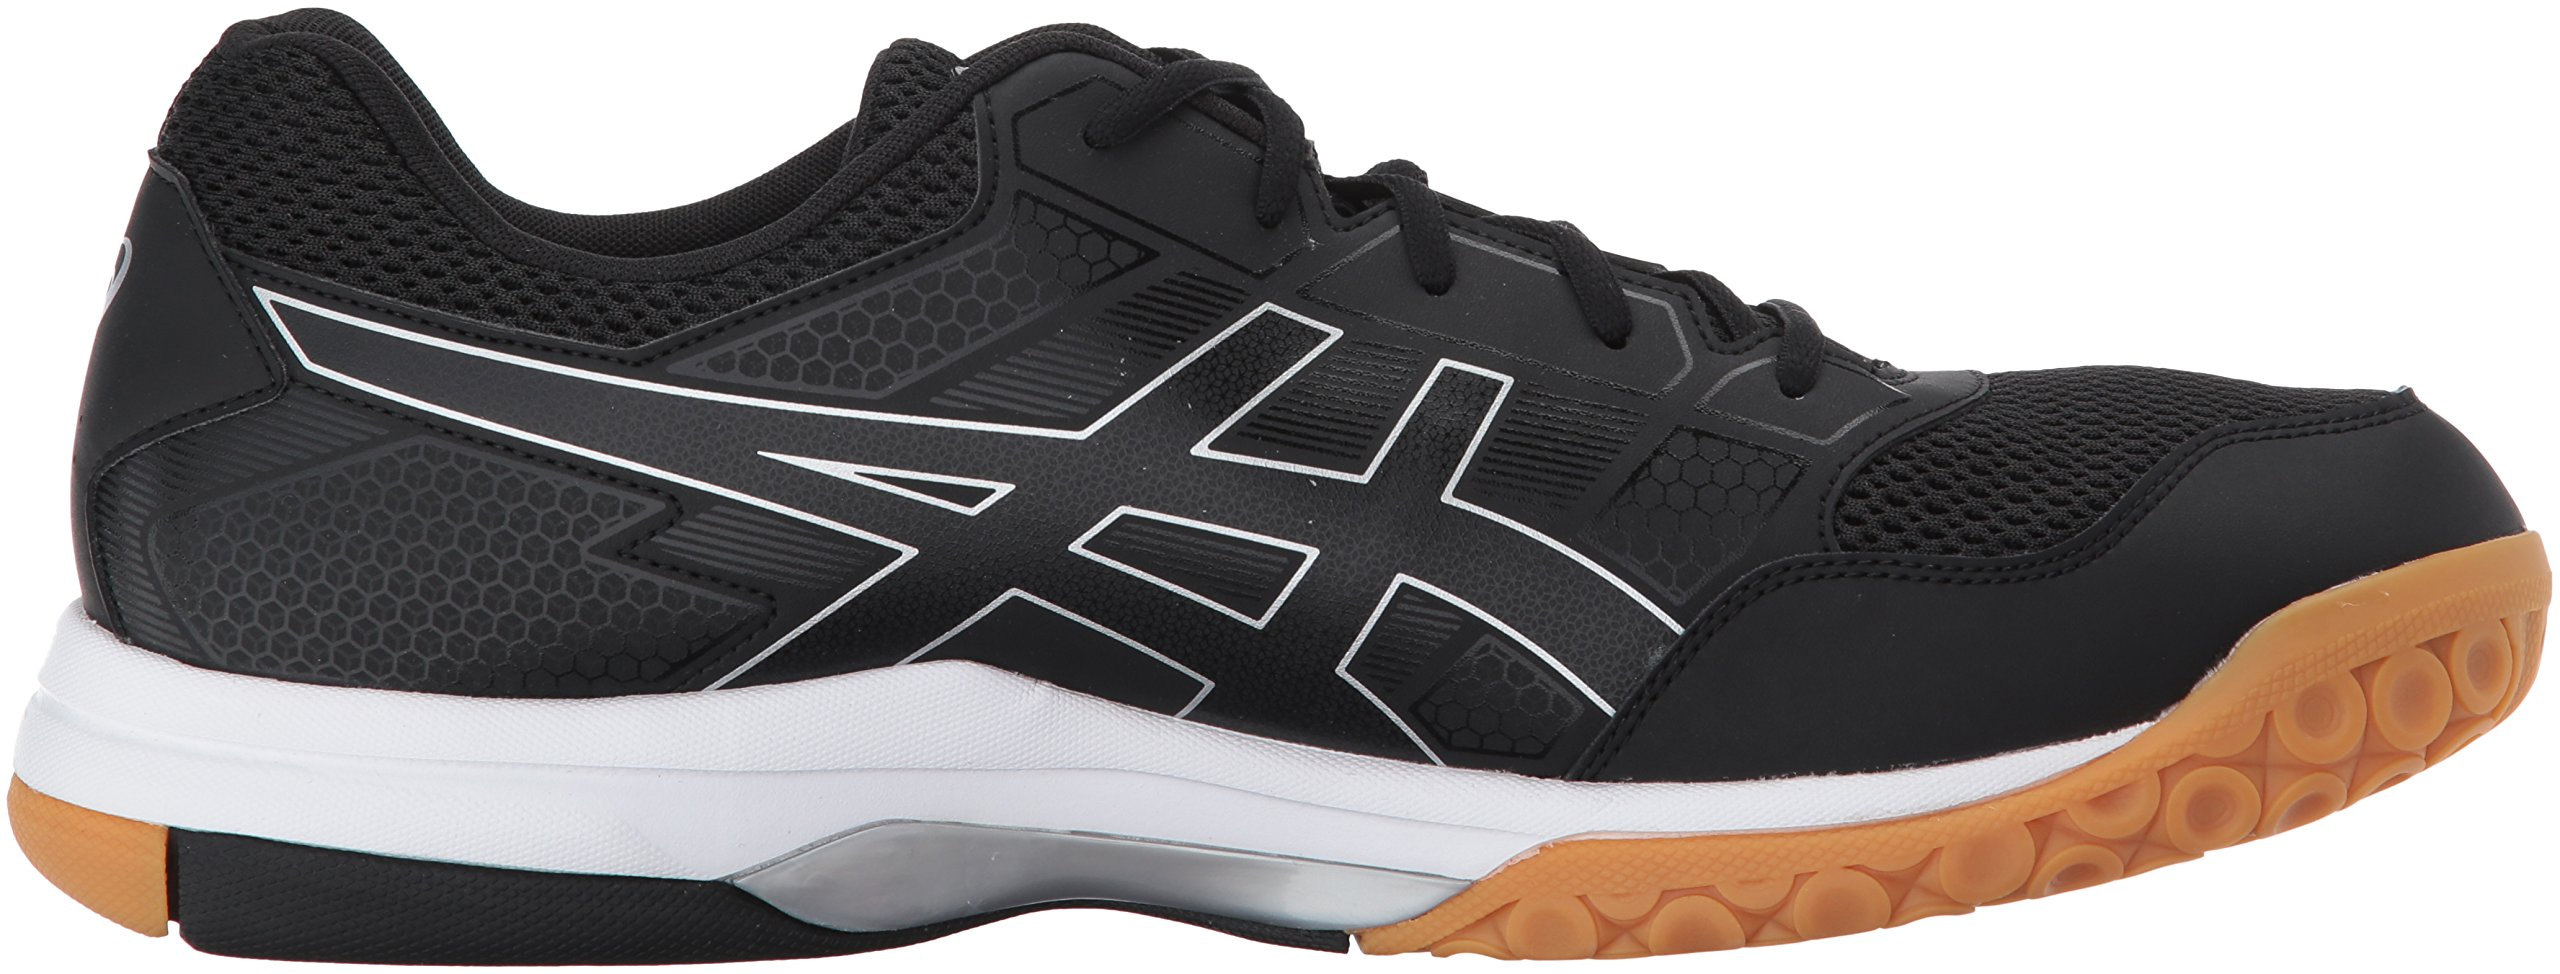 ASICS Mens Gel-Rocket 8 Volleyball Shoe Black/White, 7.5 Medium US by ASICS (Image #7)